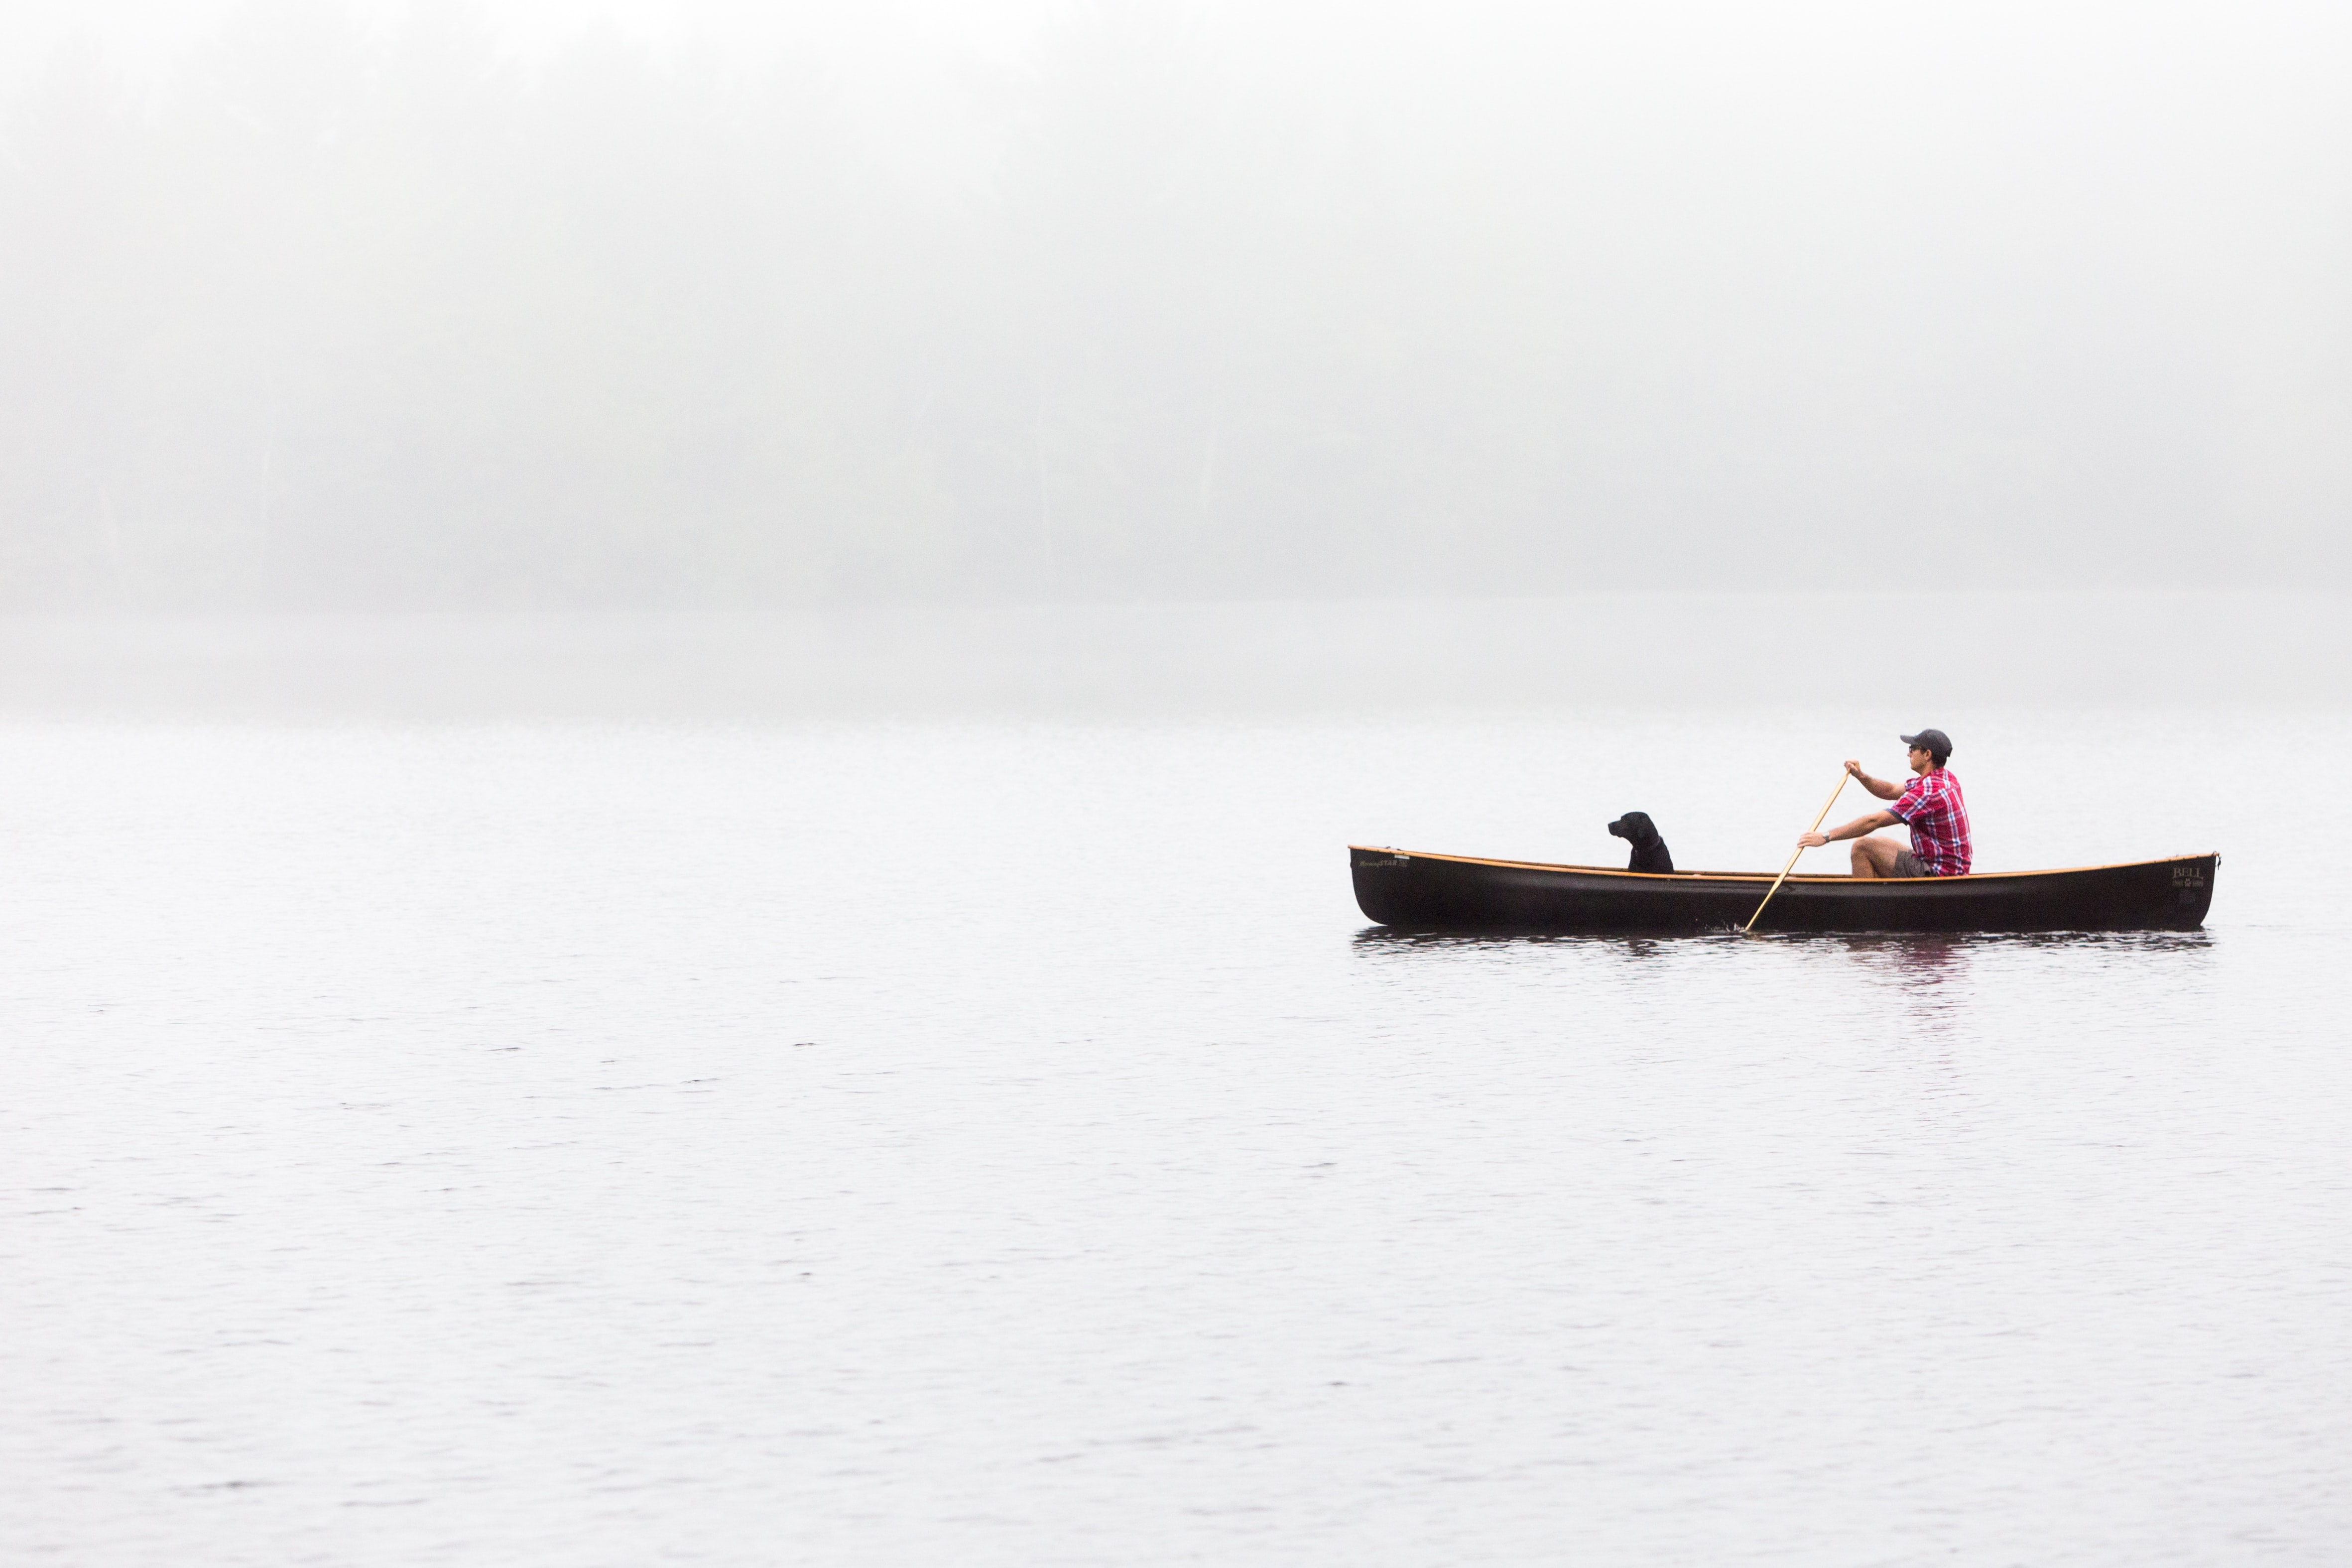 Man and dog on a foggy morning canoe ride through a calm lake